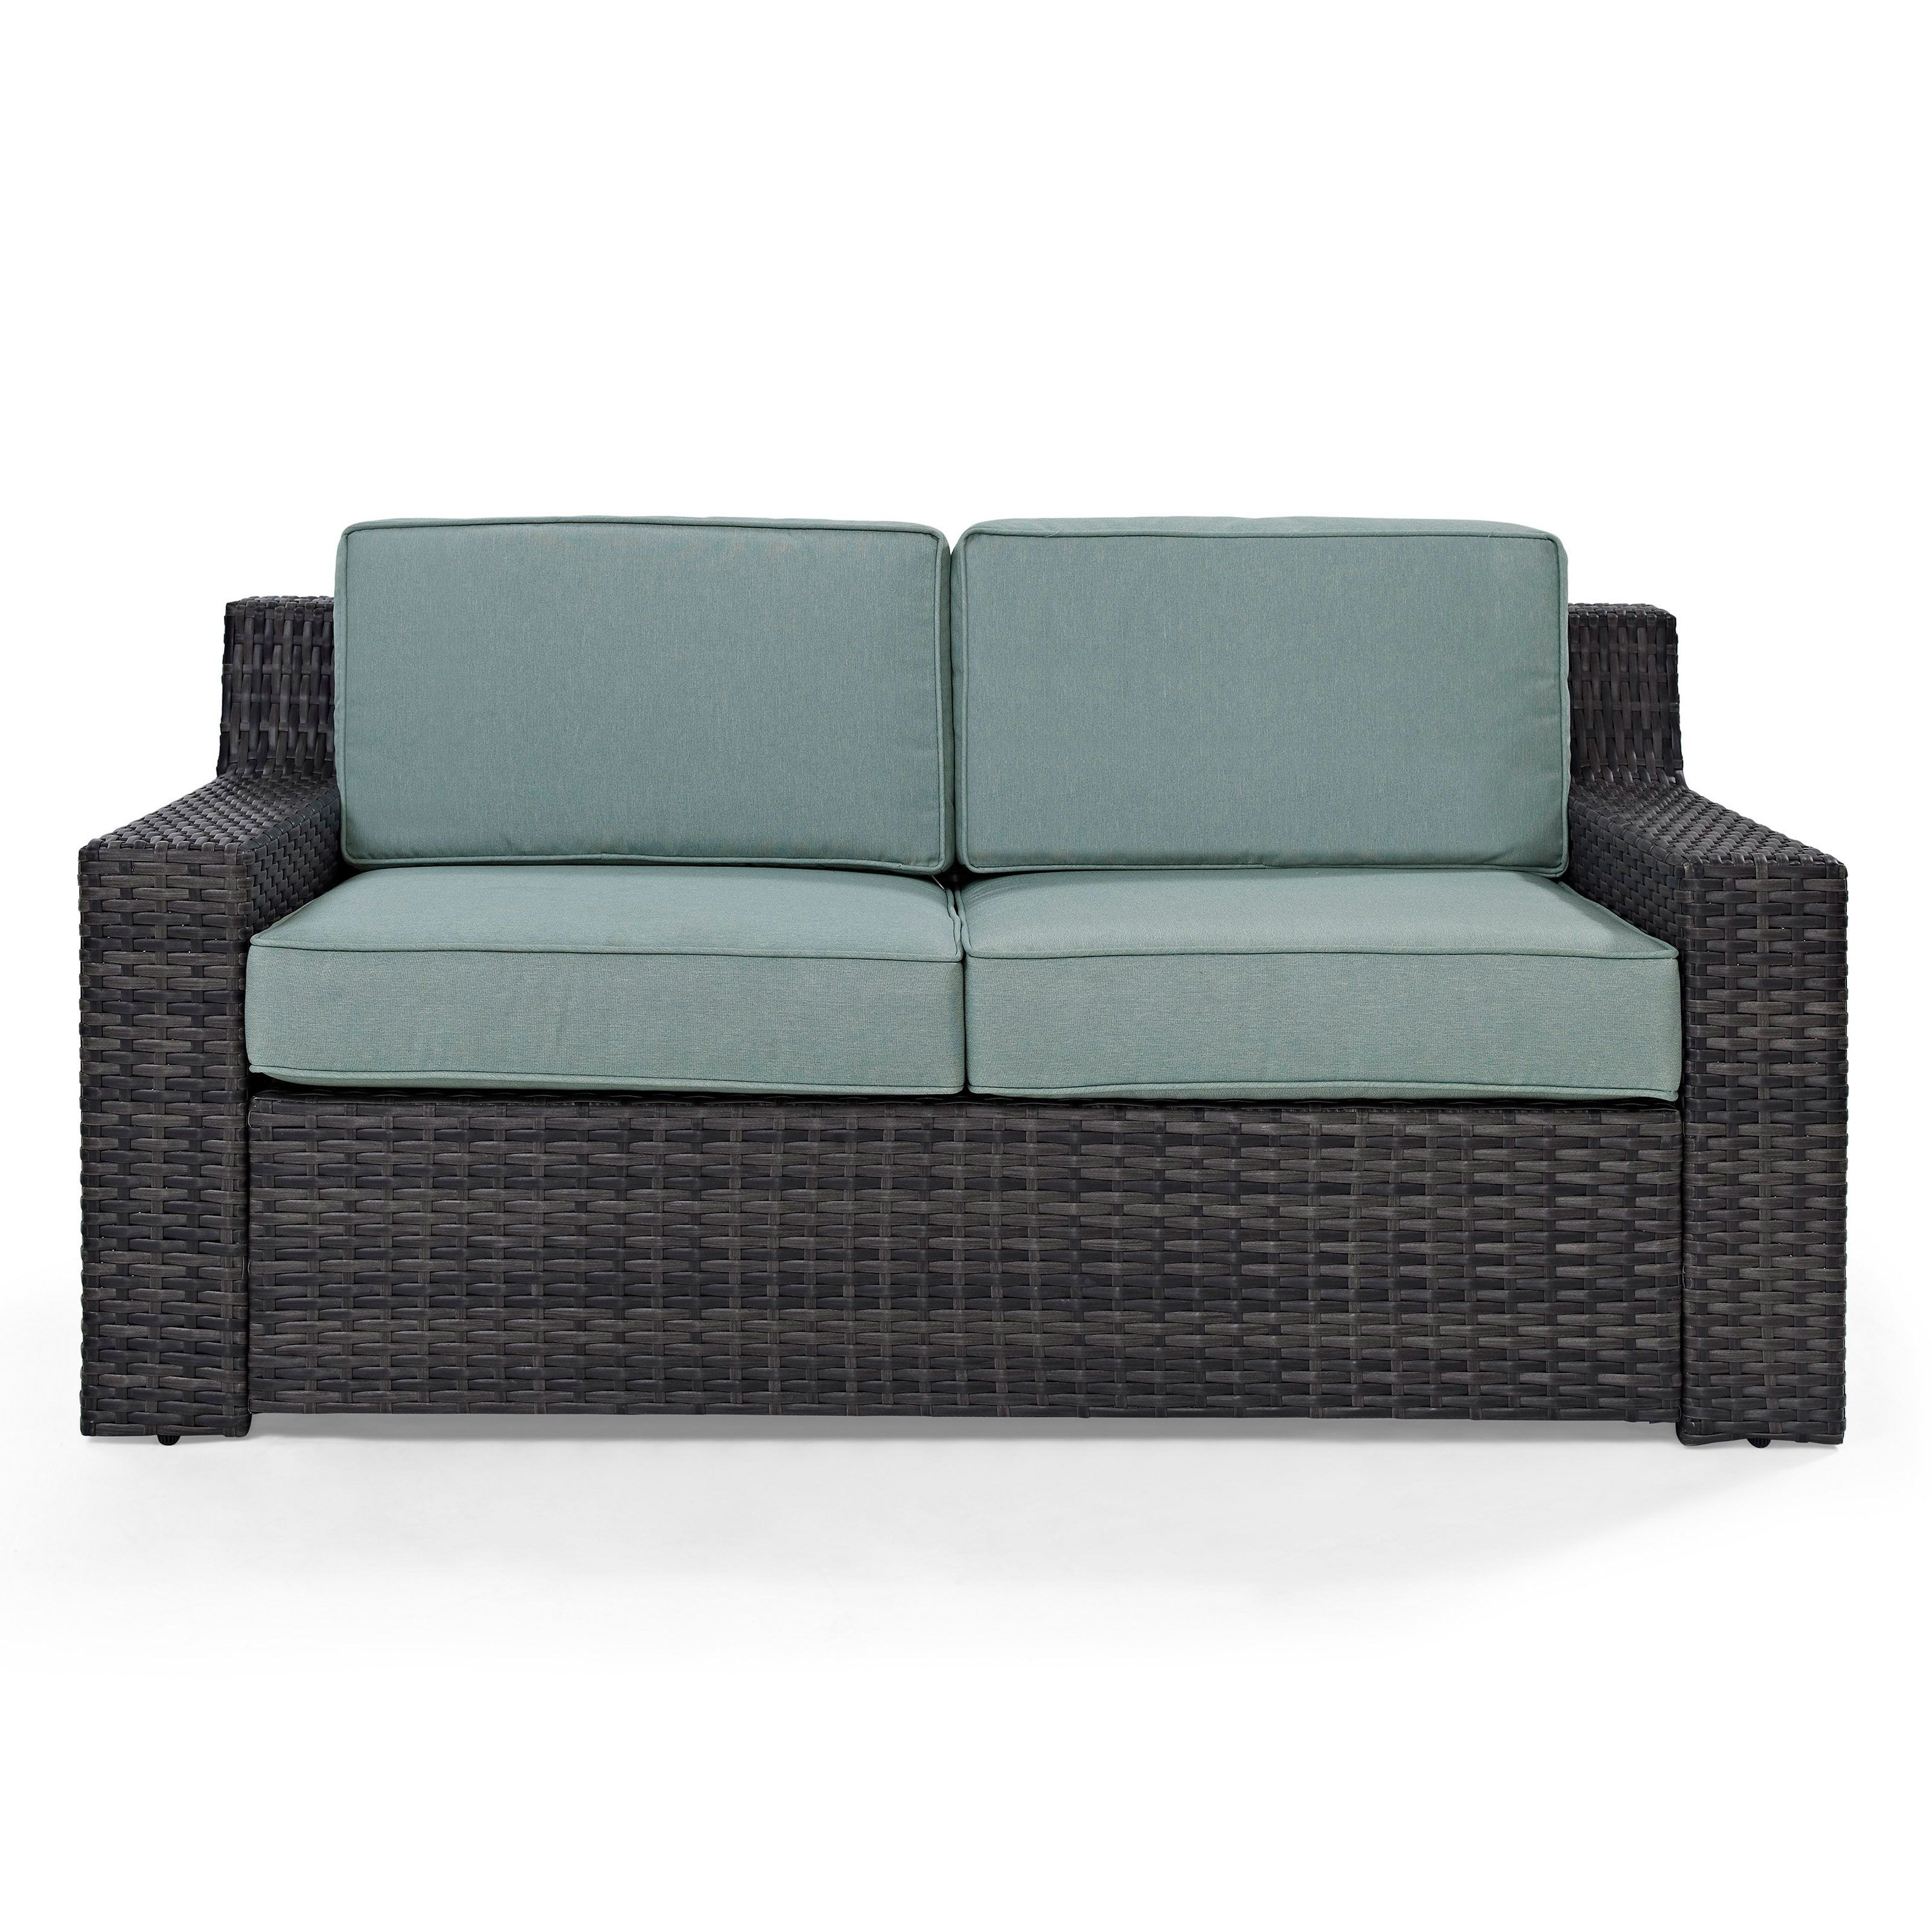 Outdoor Crosley Furniture Beaufort Patio Loveseat With Throughout Newest Vardin Loveseats With Cushions (View 6 of 20)